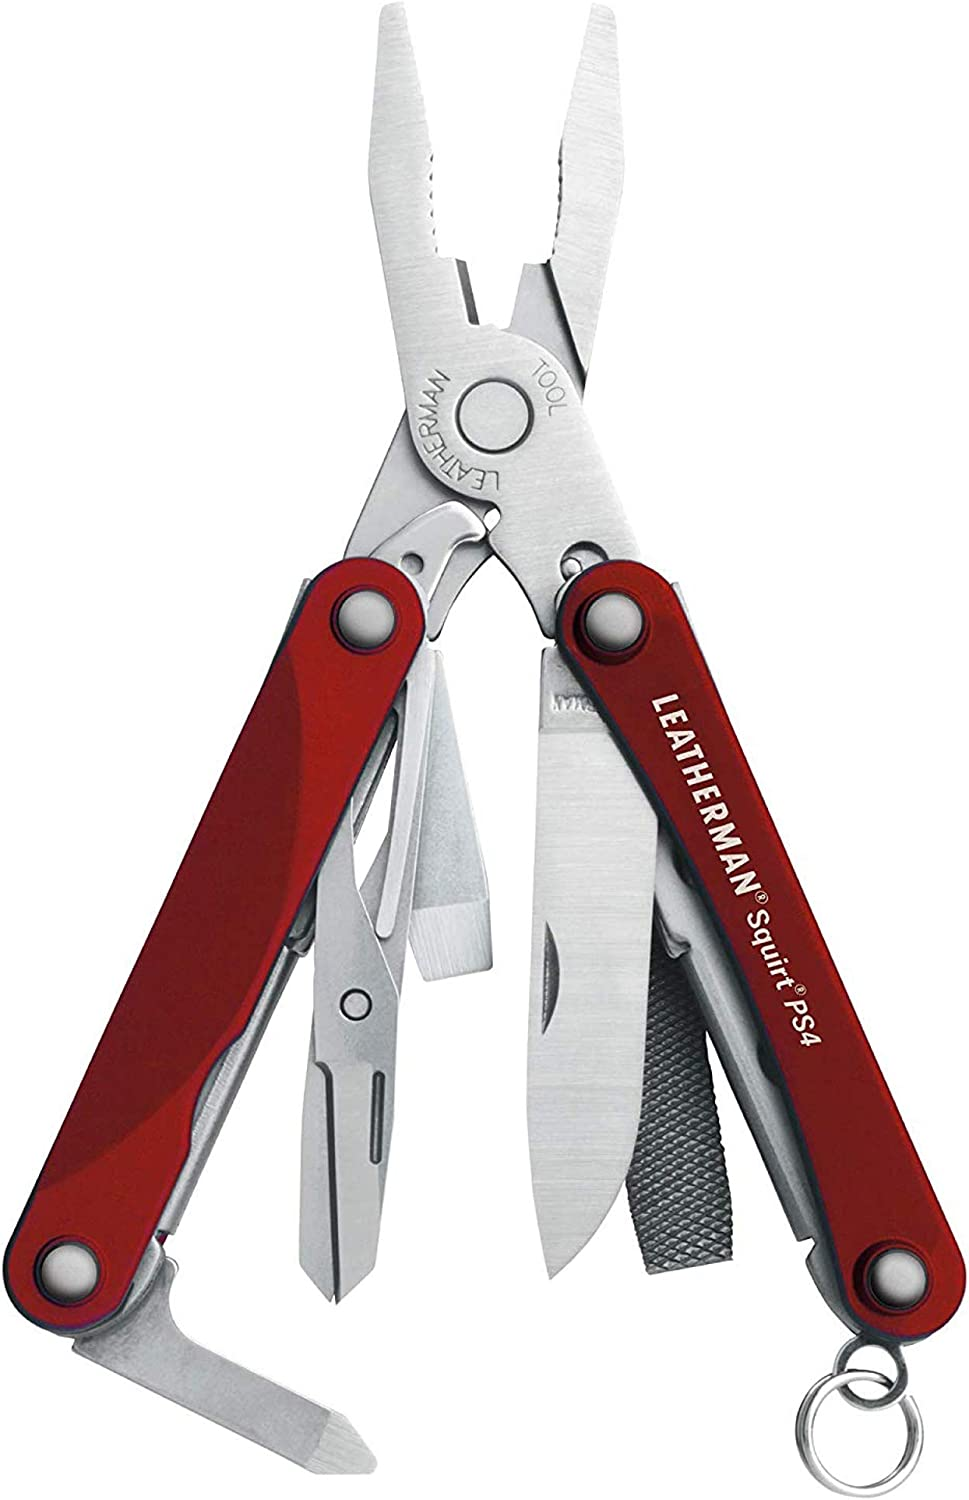 Leatherman Squirt PS4 Keychain Multitool